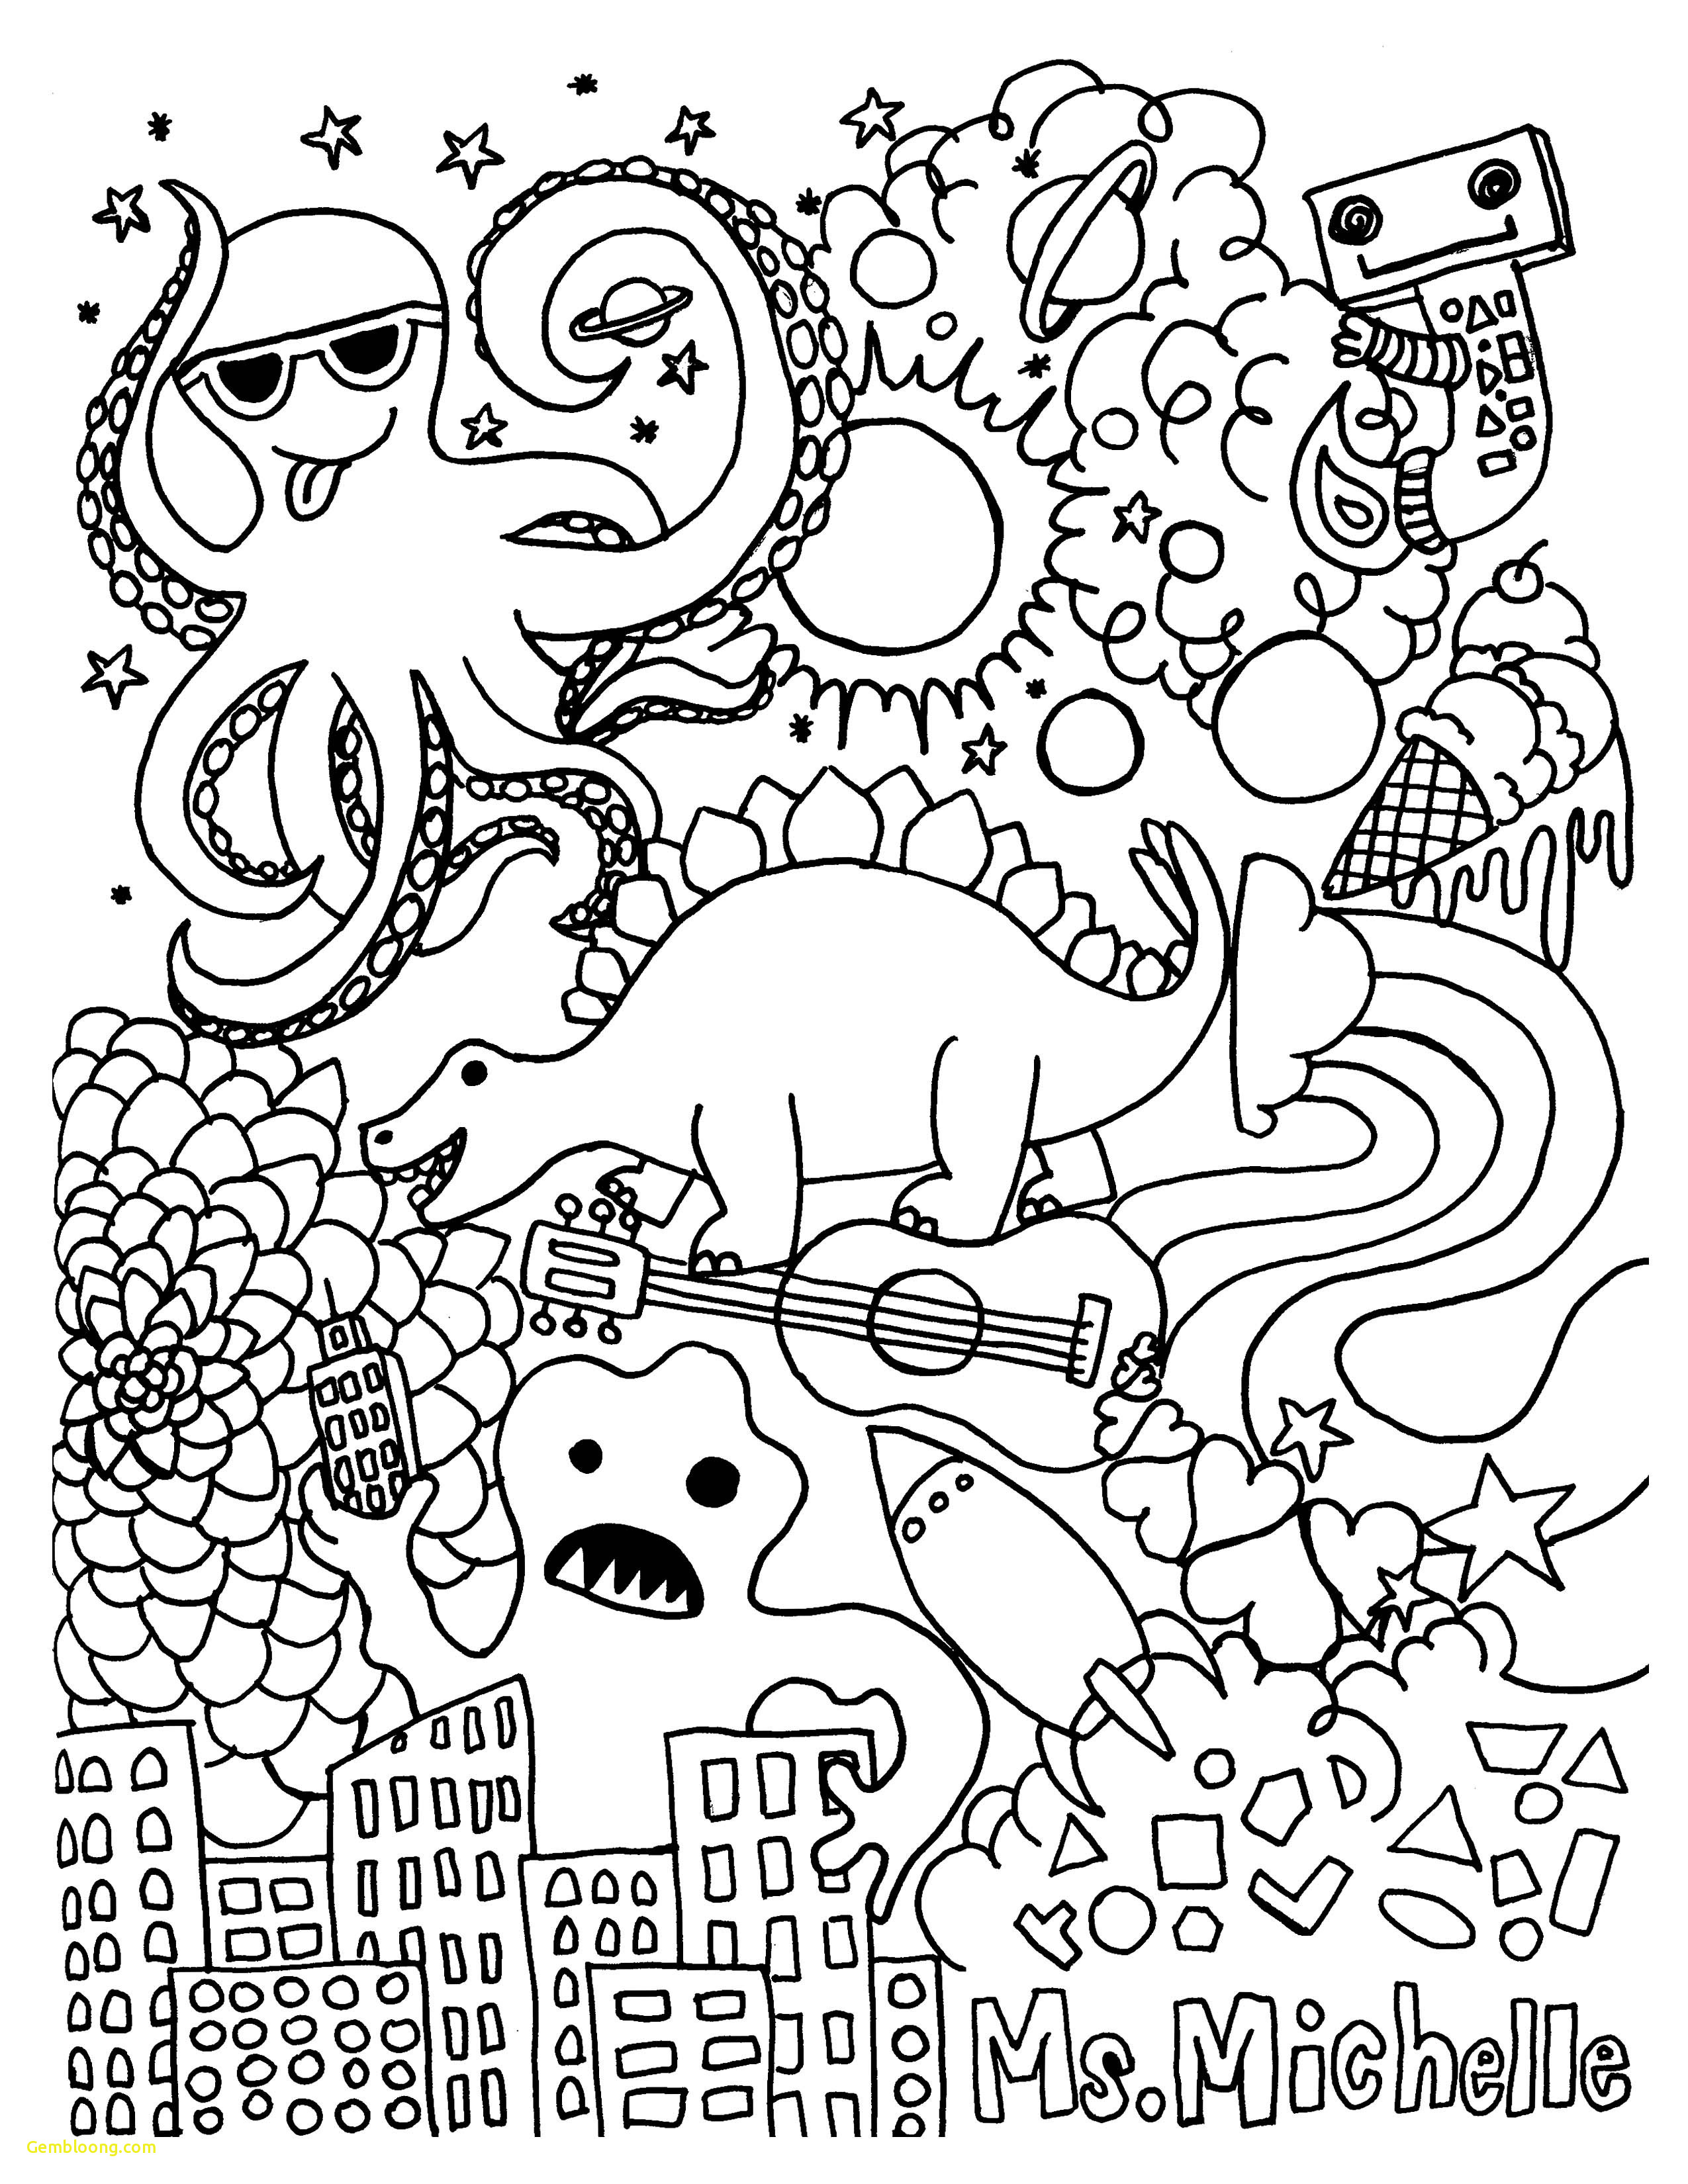 make your own coloring pages from photos free Collection-Transformer Coloring Pages Coloring Pages to Color Elegant Color Books Luxury Printable Coloring Books for 17-j